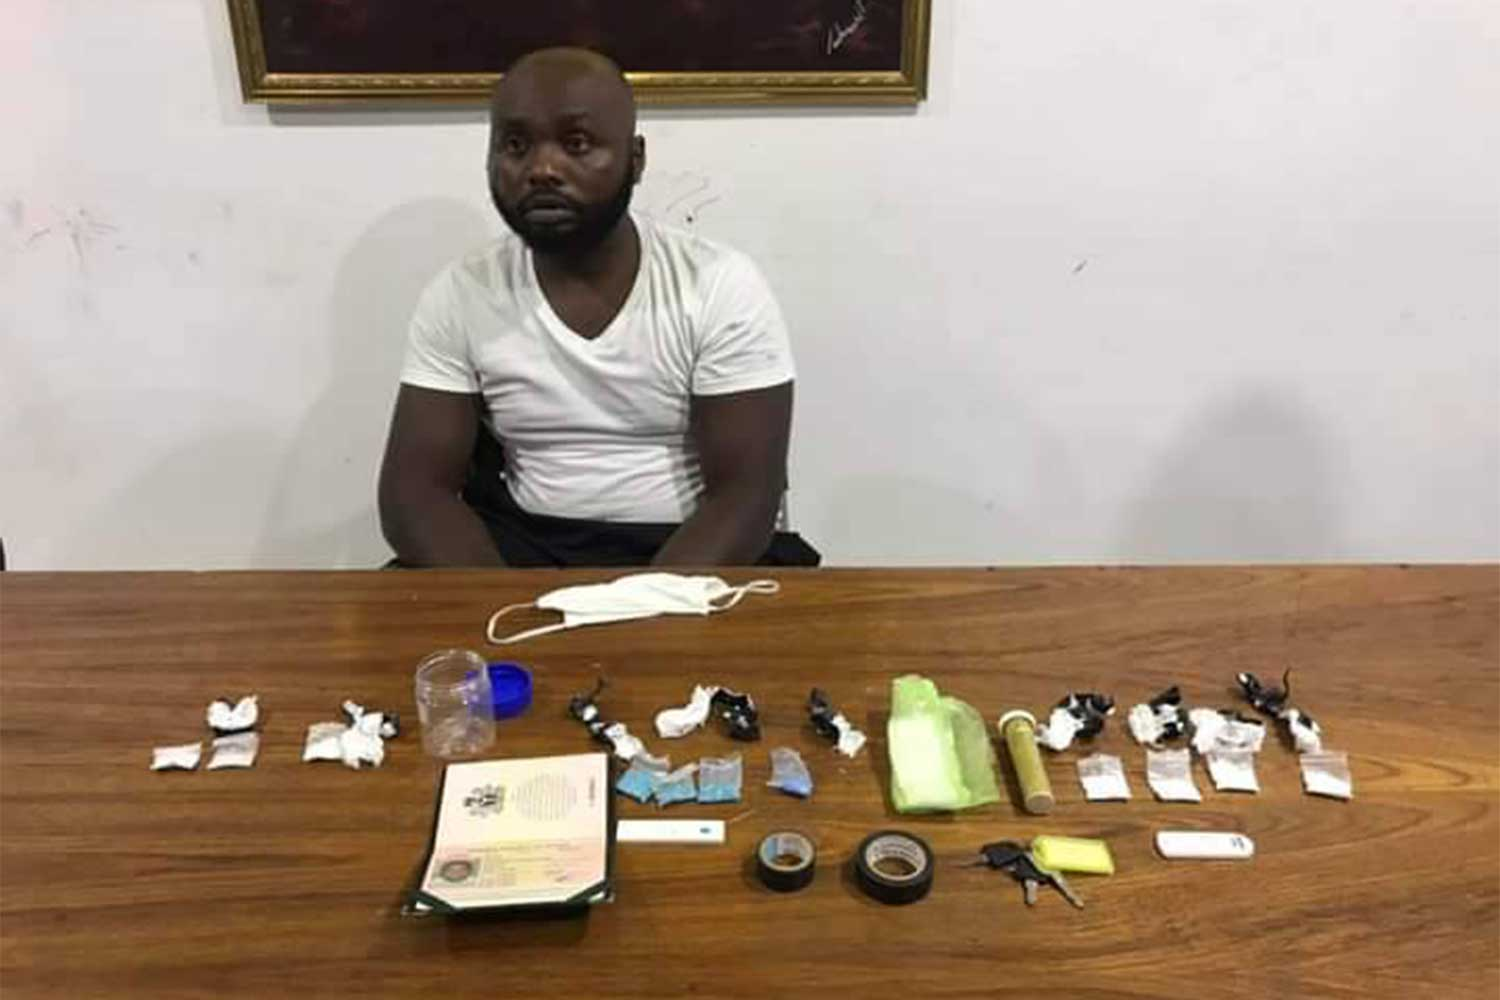 ฺNigerian arrested for selling drugs in Patong